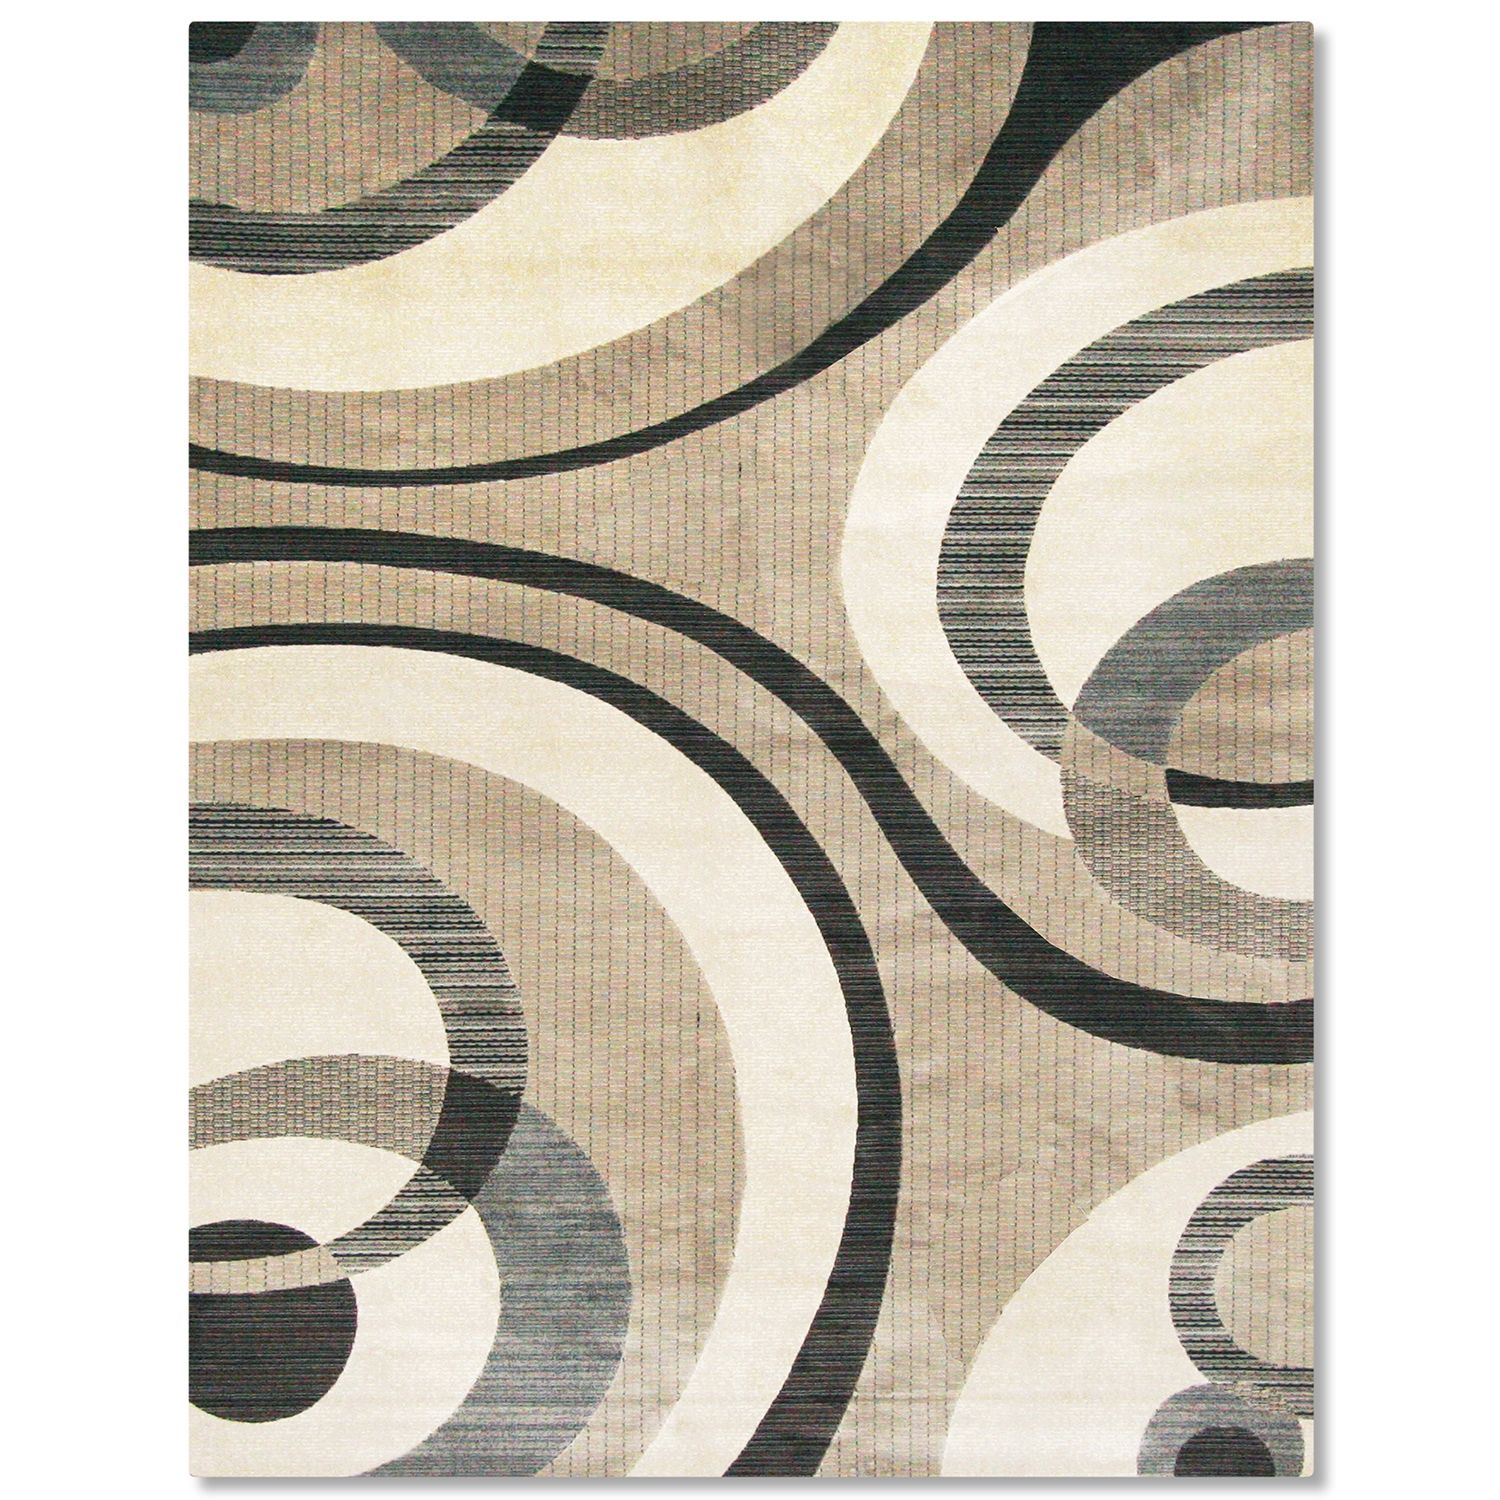 ^ 1000+ images about rea rugs on Pinterest ontemporary area rugs ...